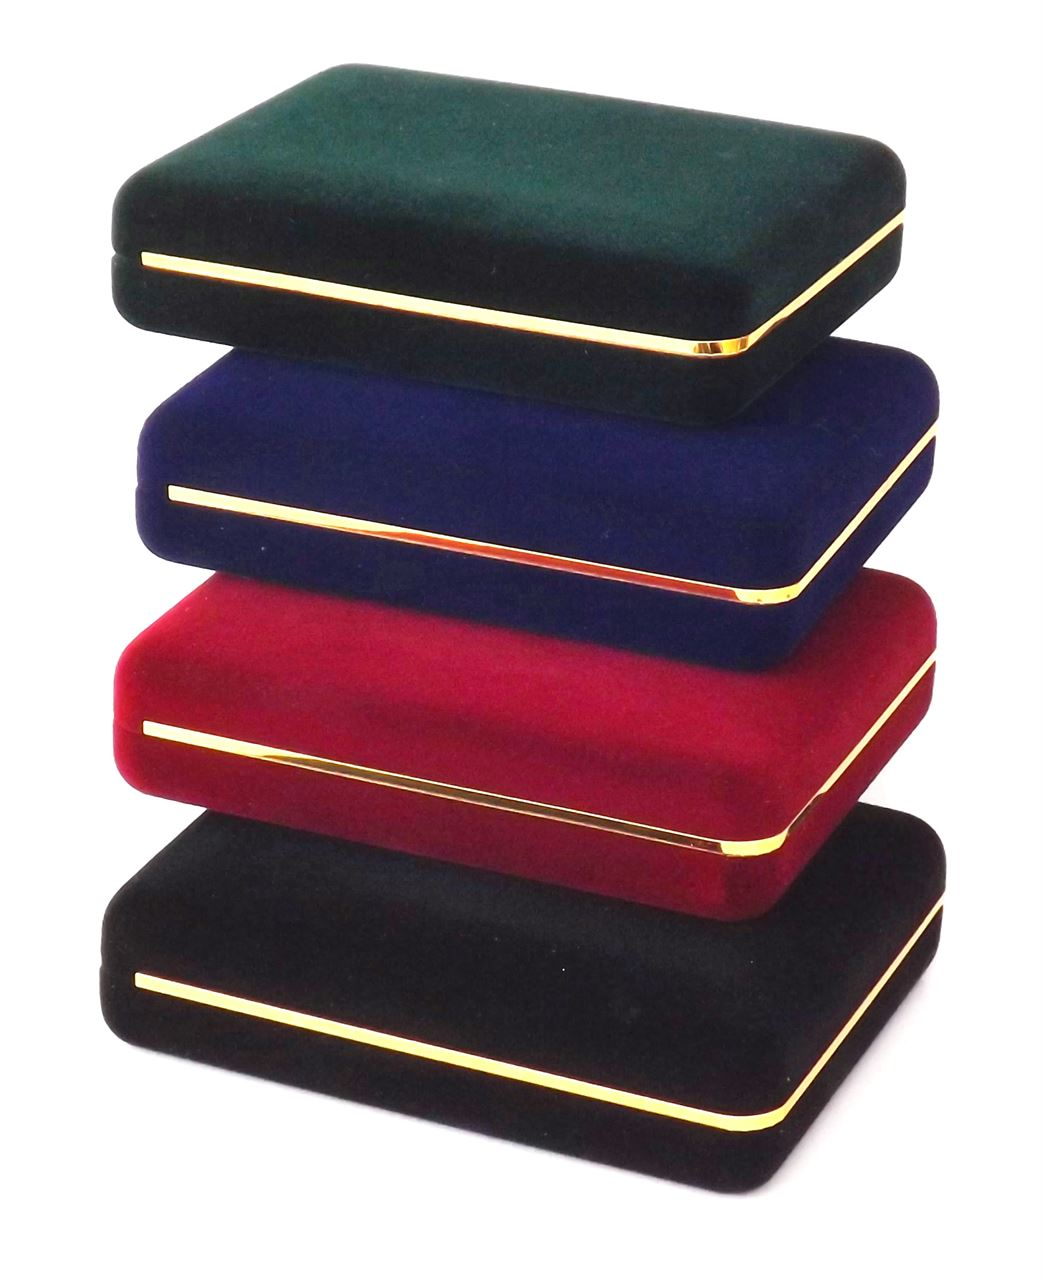 Deluxe Medal Box - Green, Blue, Red and Black